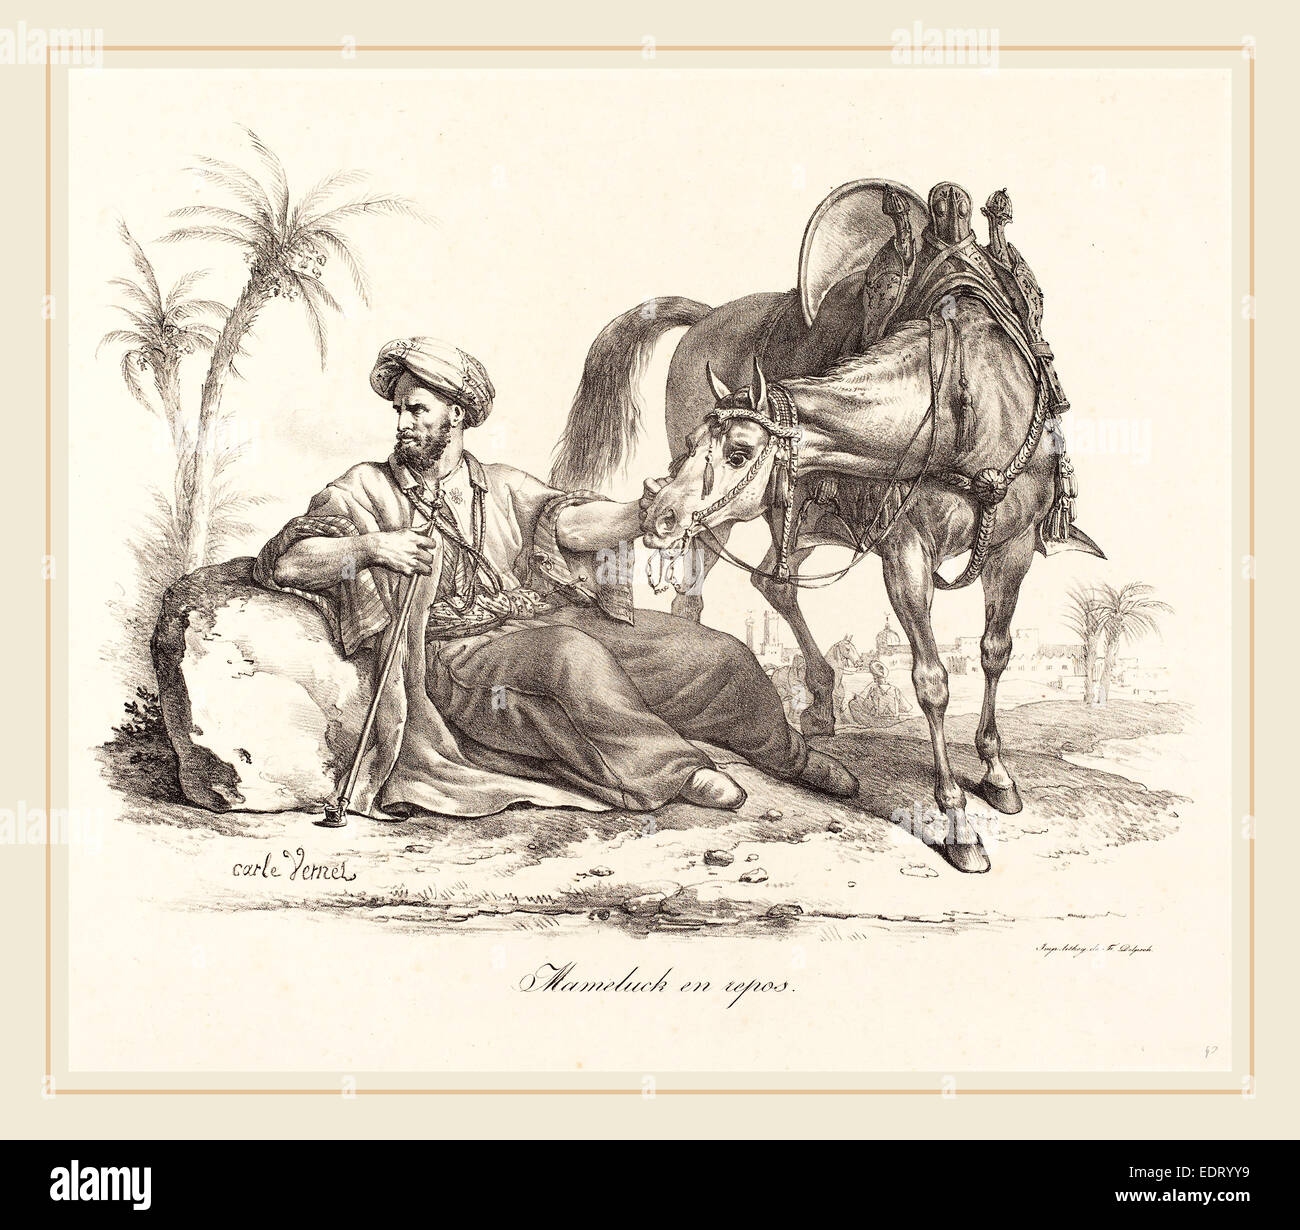 Carle Vernet (French, 1758-1836), A Mameluck Resting, lithograph - Stock Image